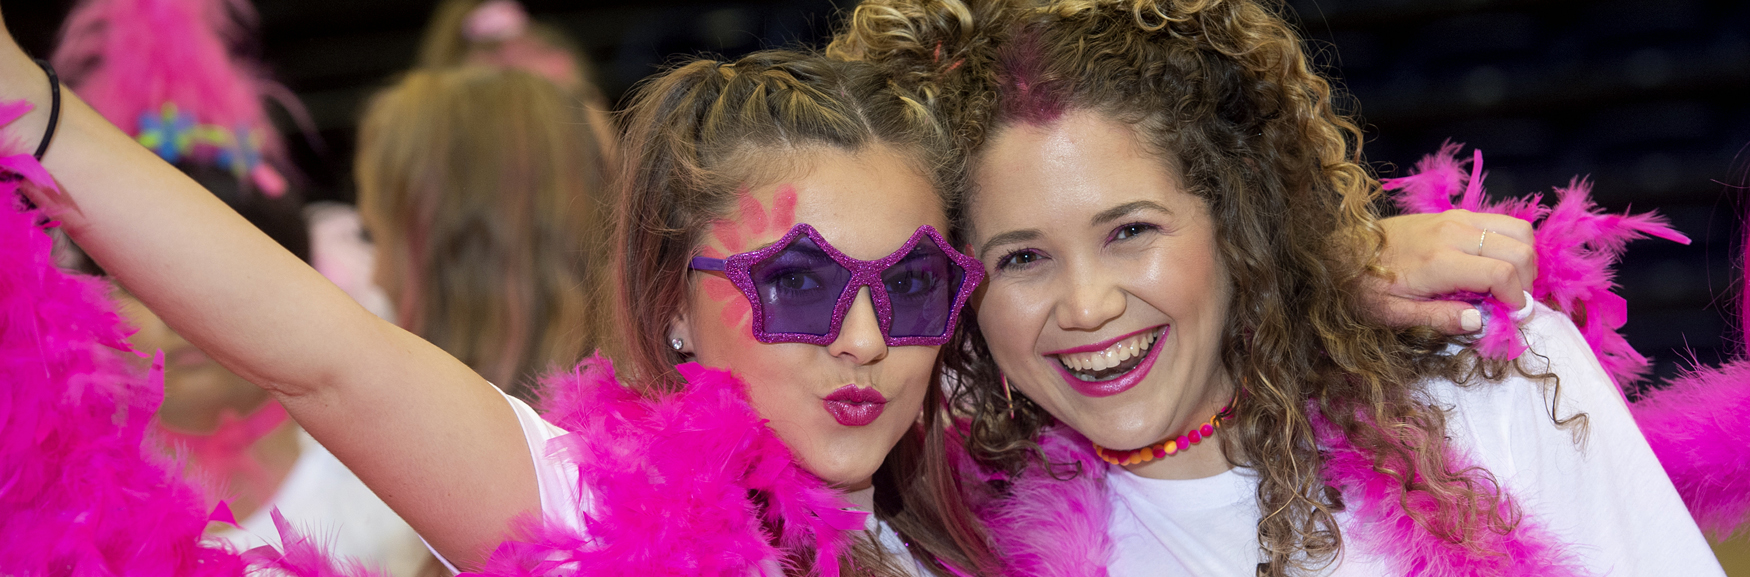 Two girls smiling with pink feather scarf